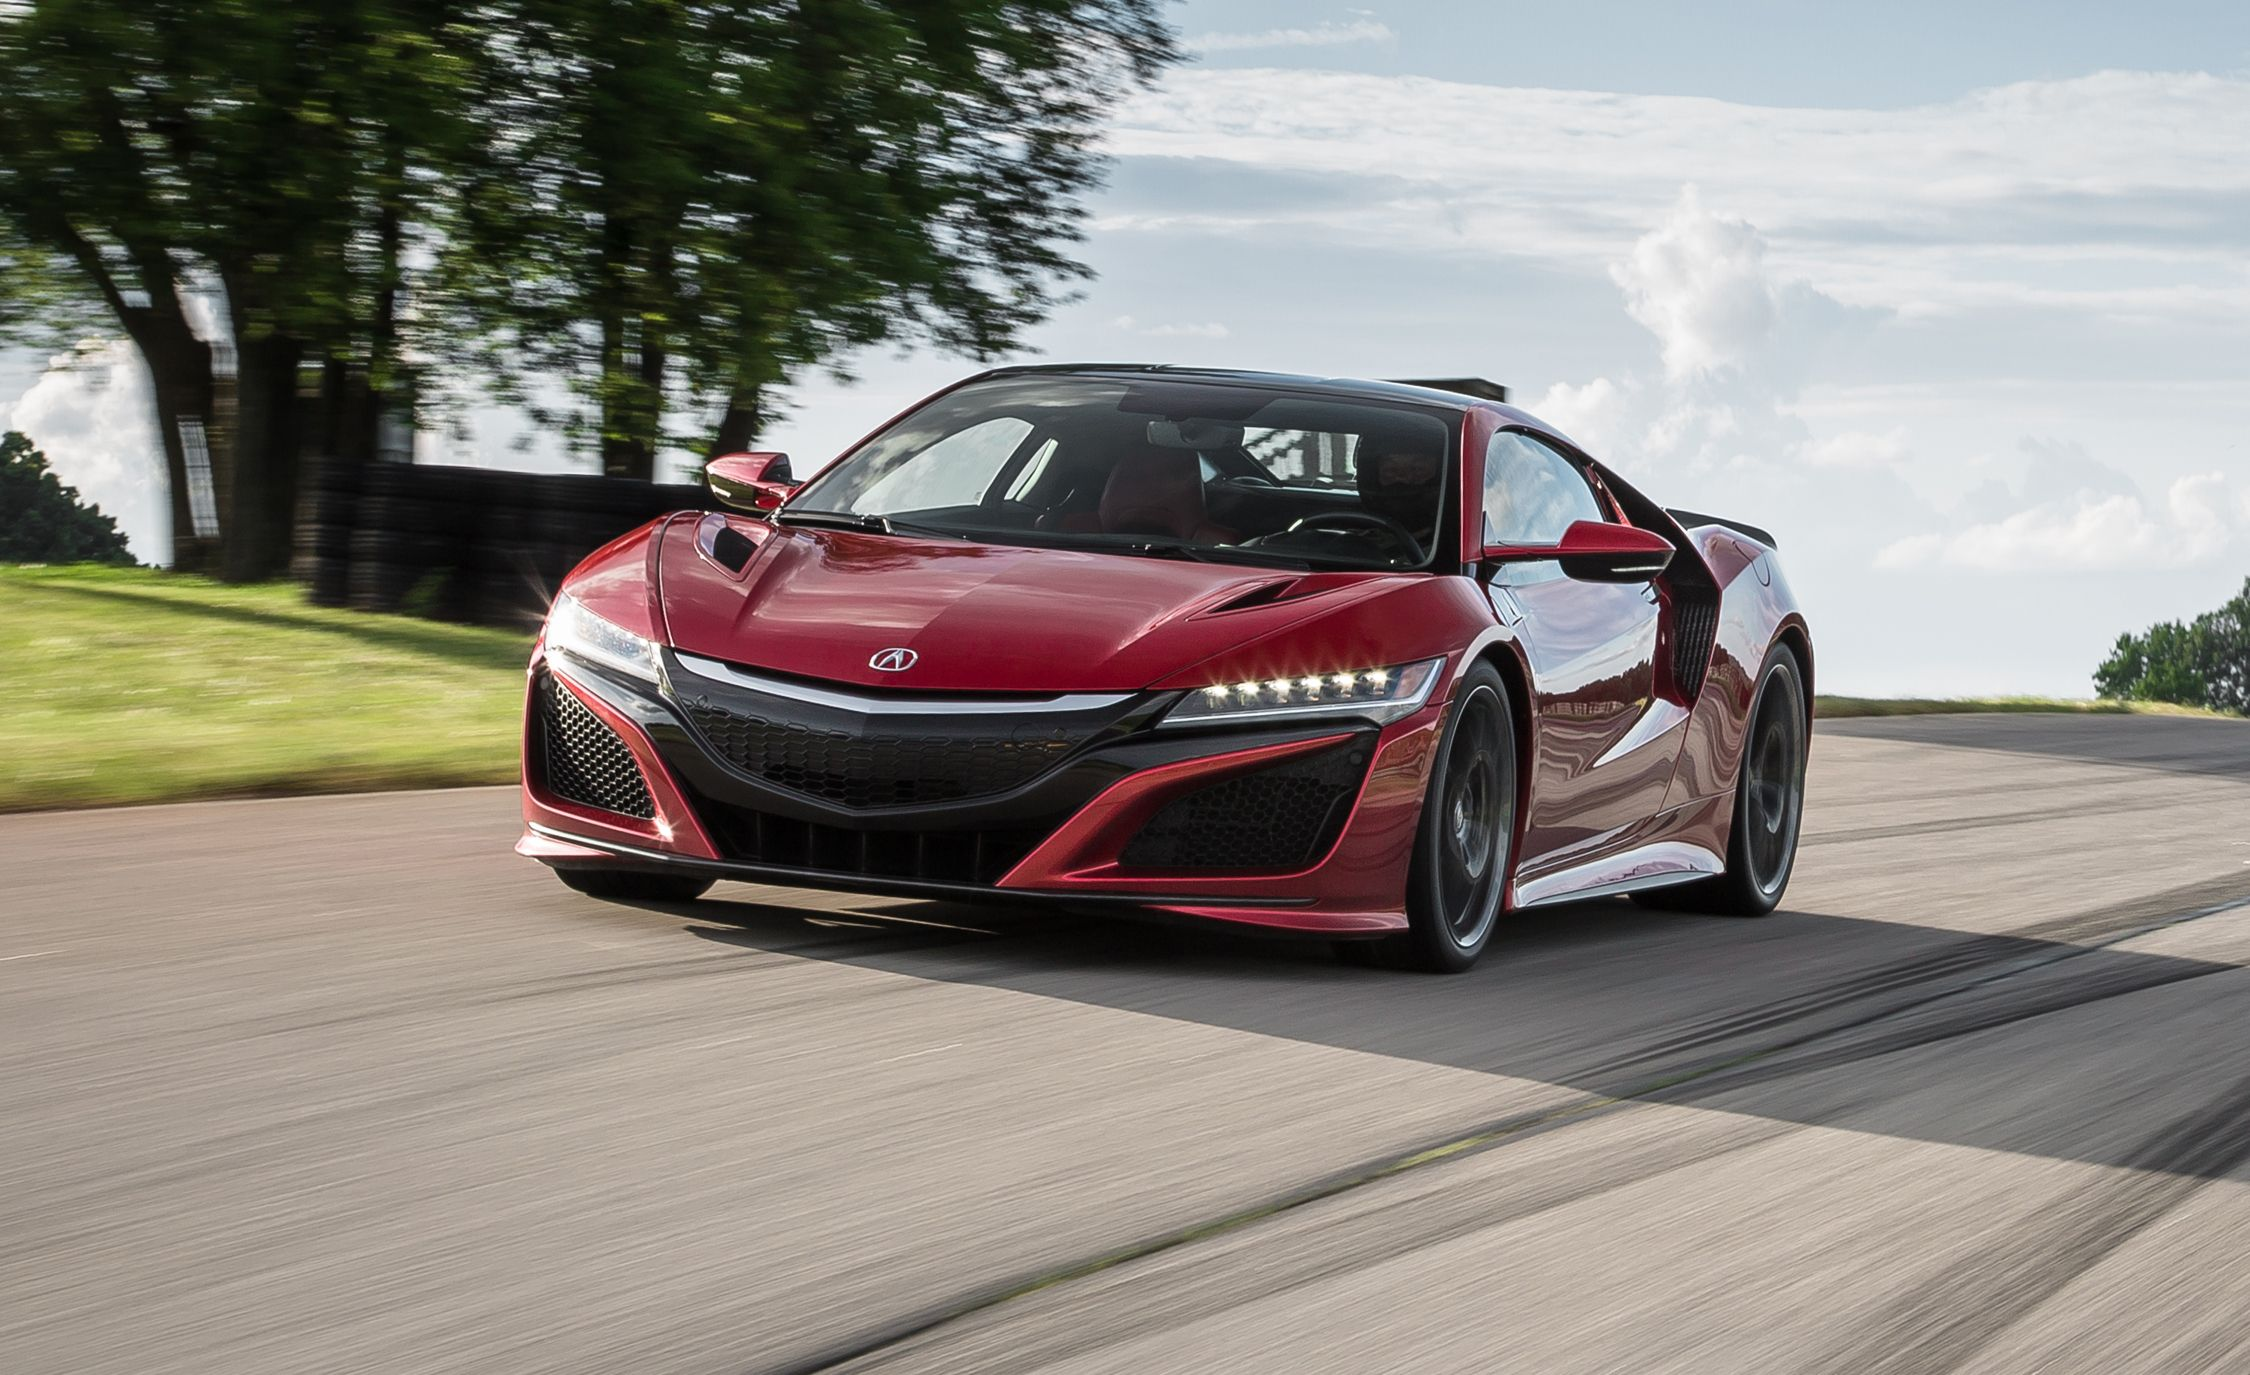 2017 Acura NSX | Engine and Transmission Review | Car and Driver